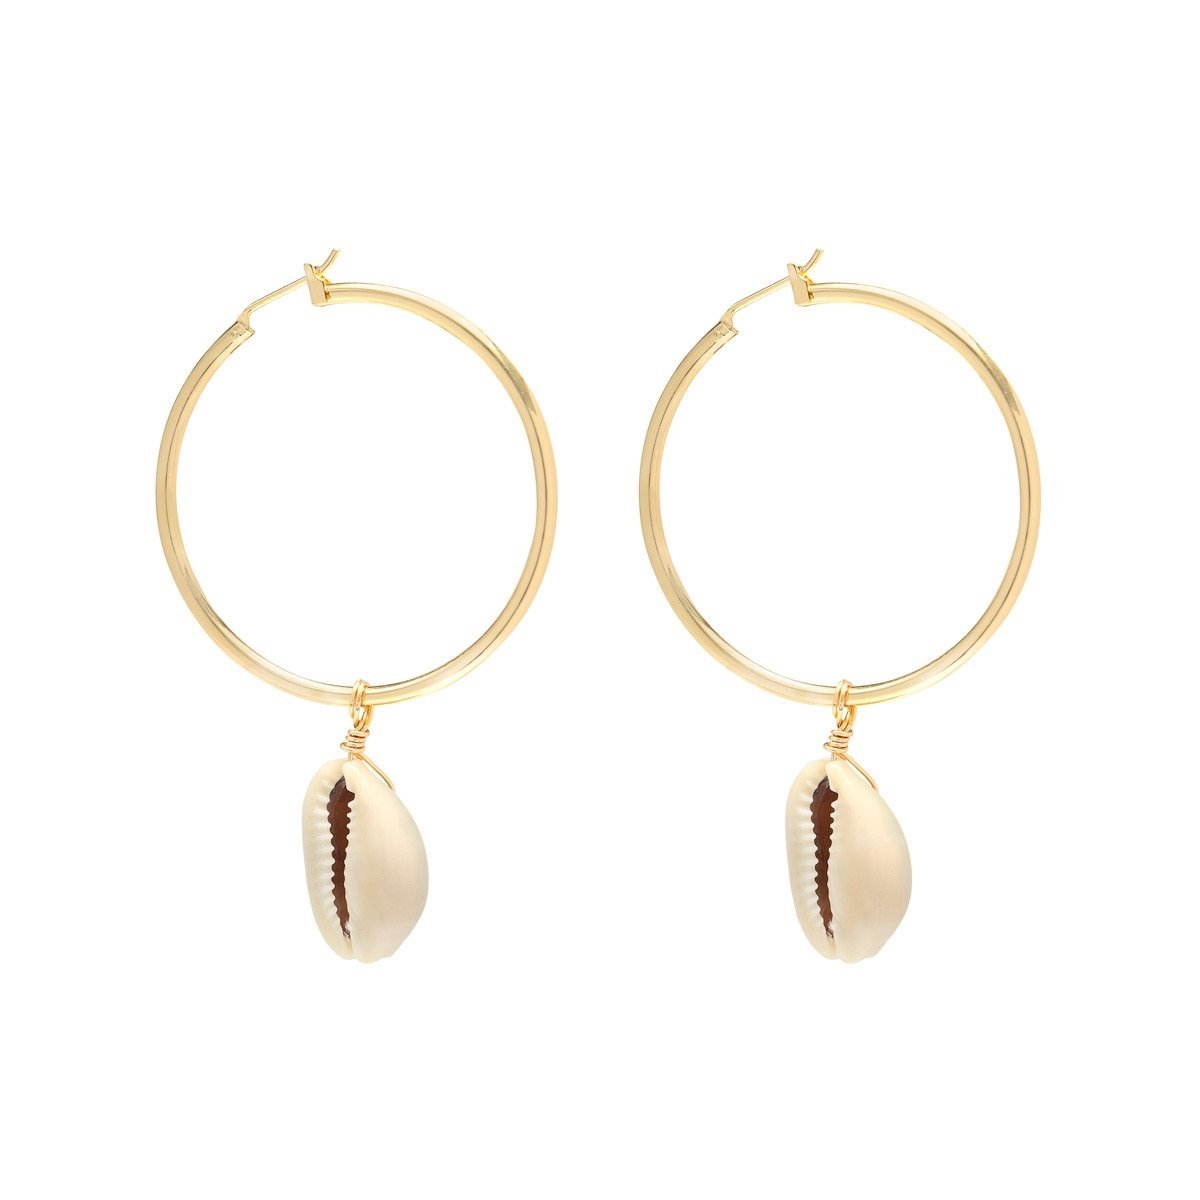 MELBOURNE EARRINGS freeshipping - Mintsy